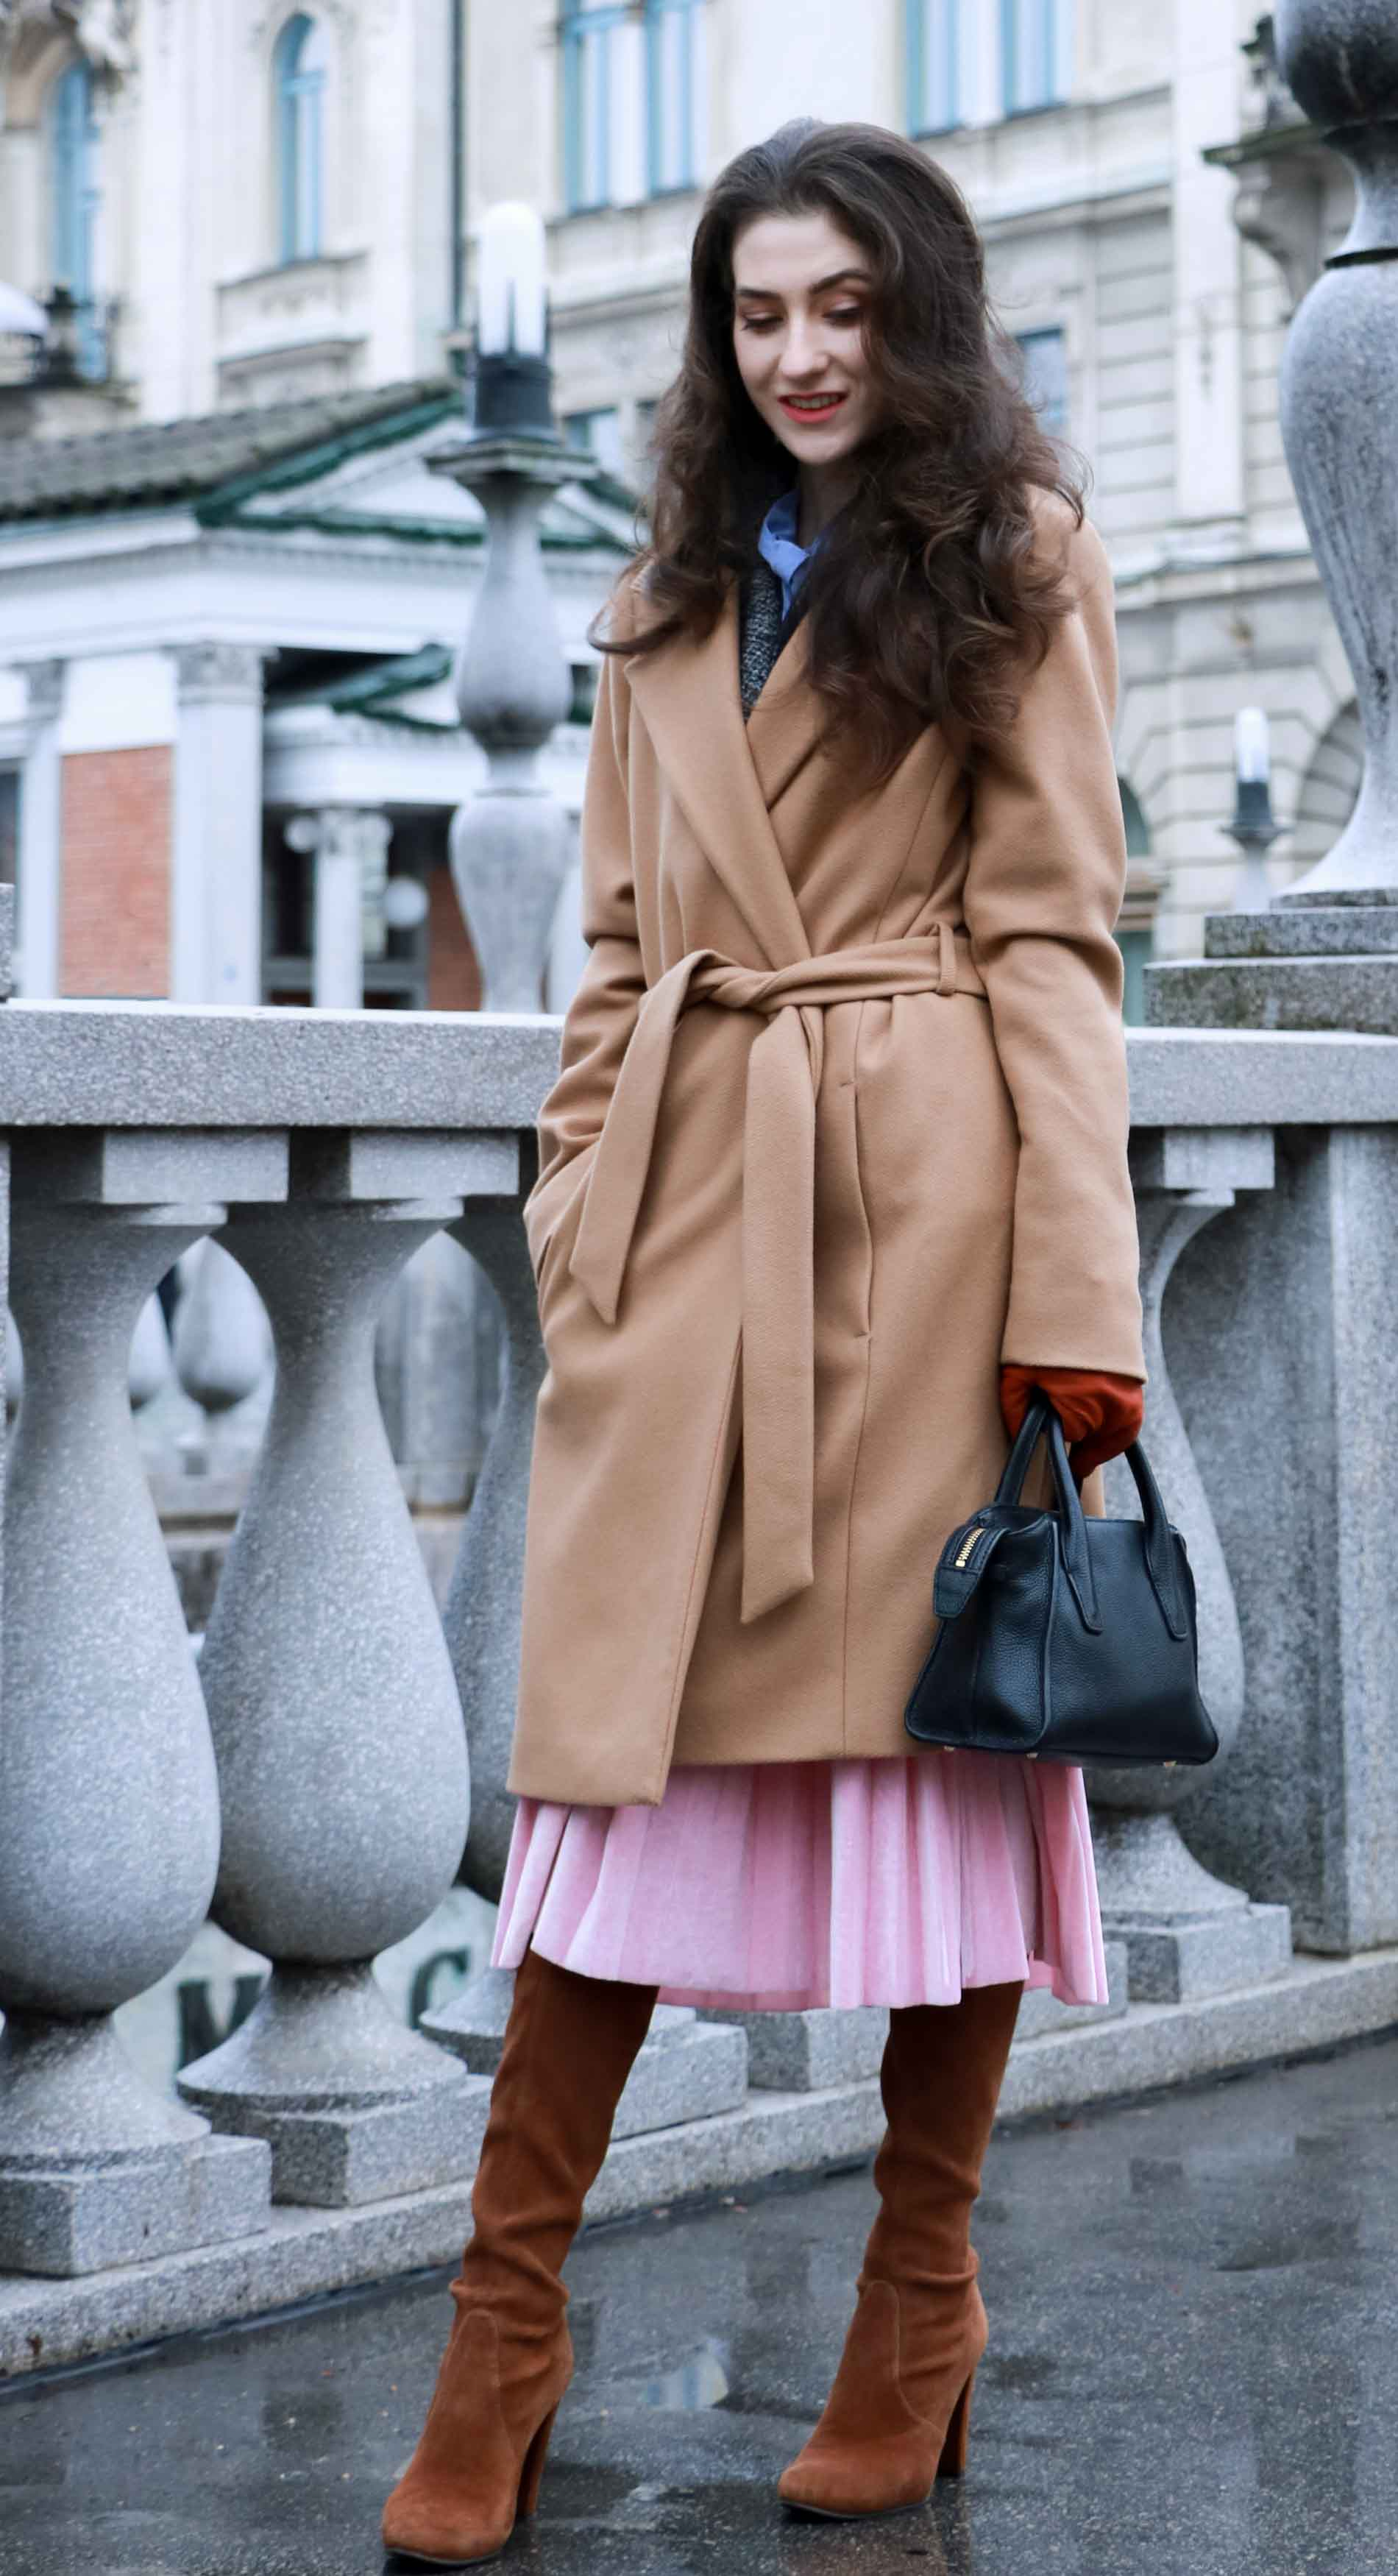 Fashion Blogger Veronika Lipar of Brunette from Wall Street wearing winter outfit, ESCADA wrap camel coat, pink velvet midi pleated skirt, brown Stuart Weitzman Highland over the knee boots, black top handle bag, leather gloves, when doing Christmas shopping